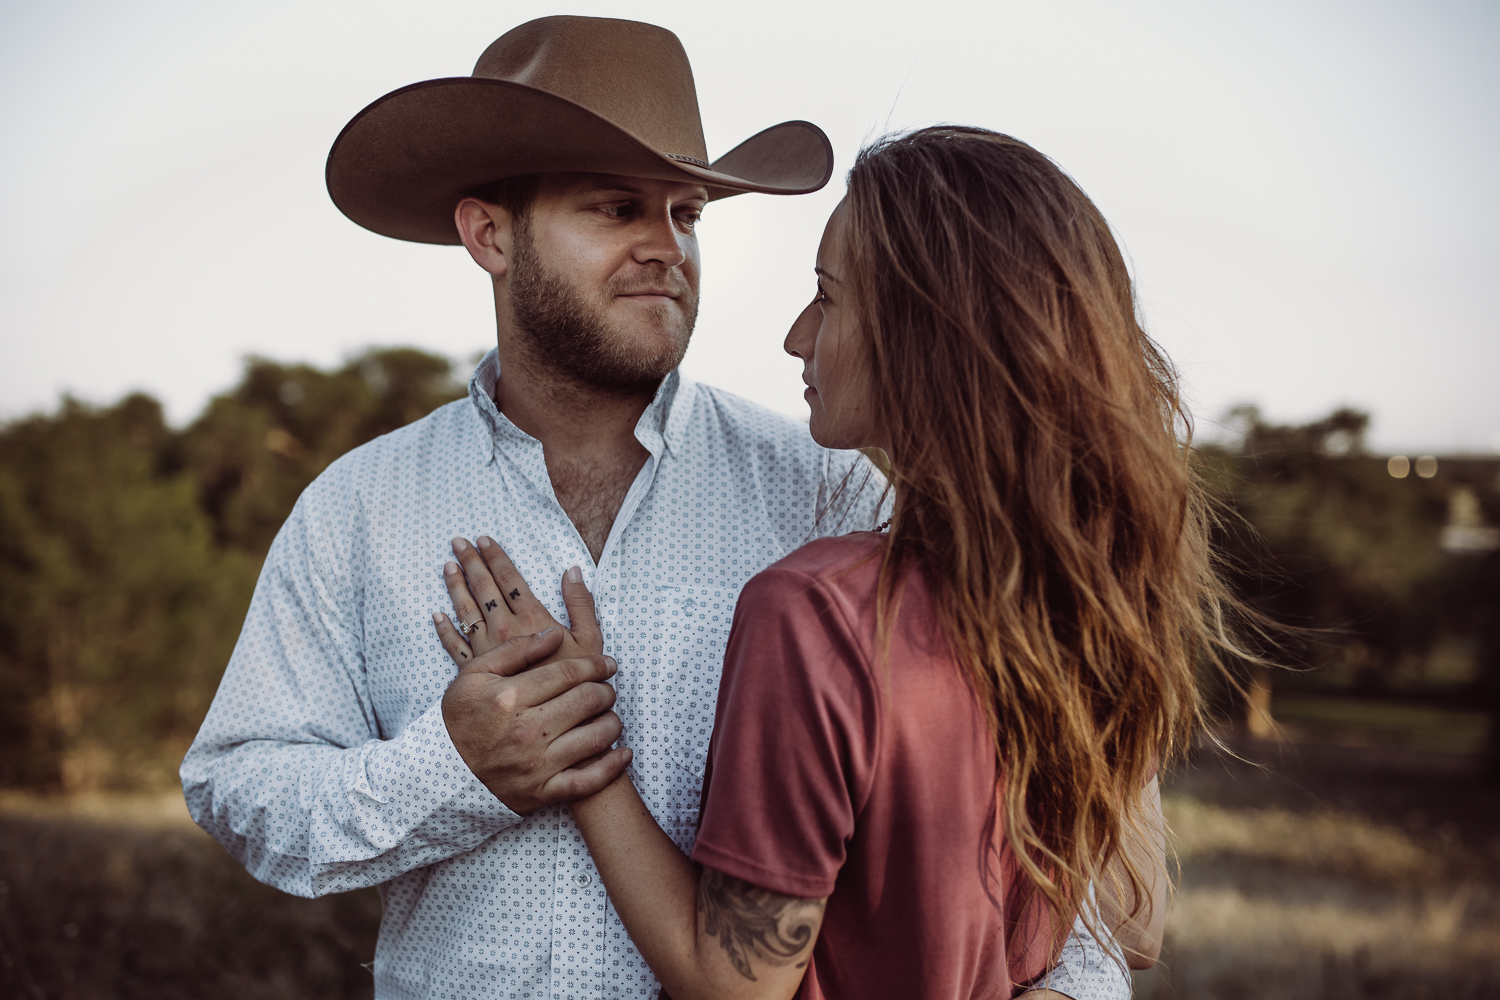 laura-beck-photography-best-lubbock-texas-couples-love-lifestyle-engagement-wedding-anniversary-portraits-94.jpg